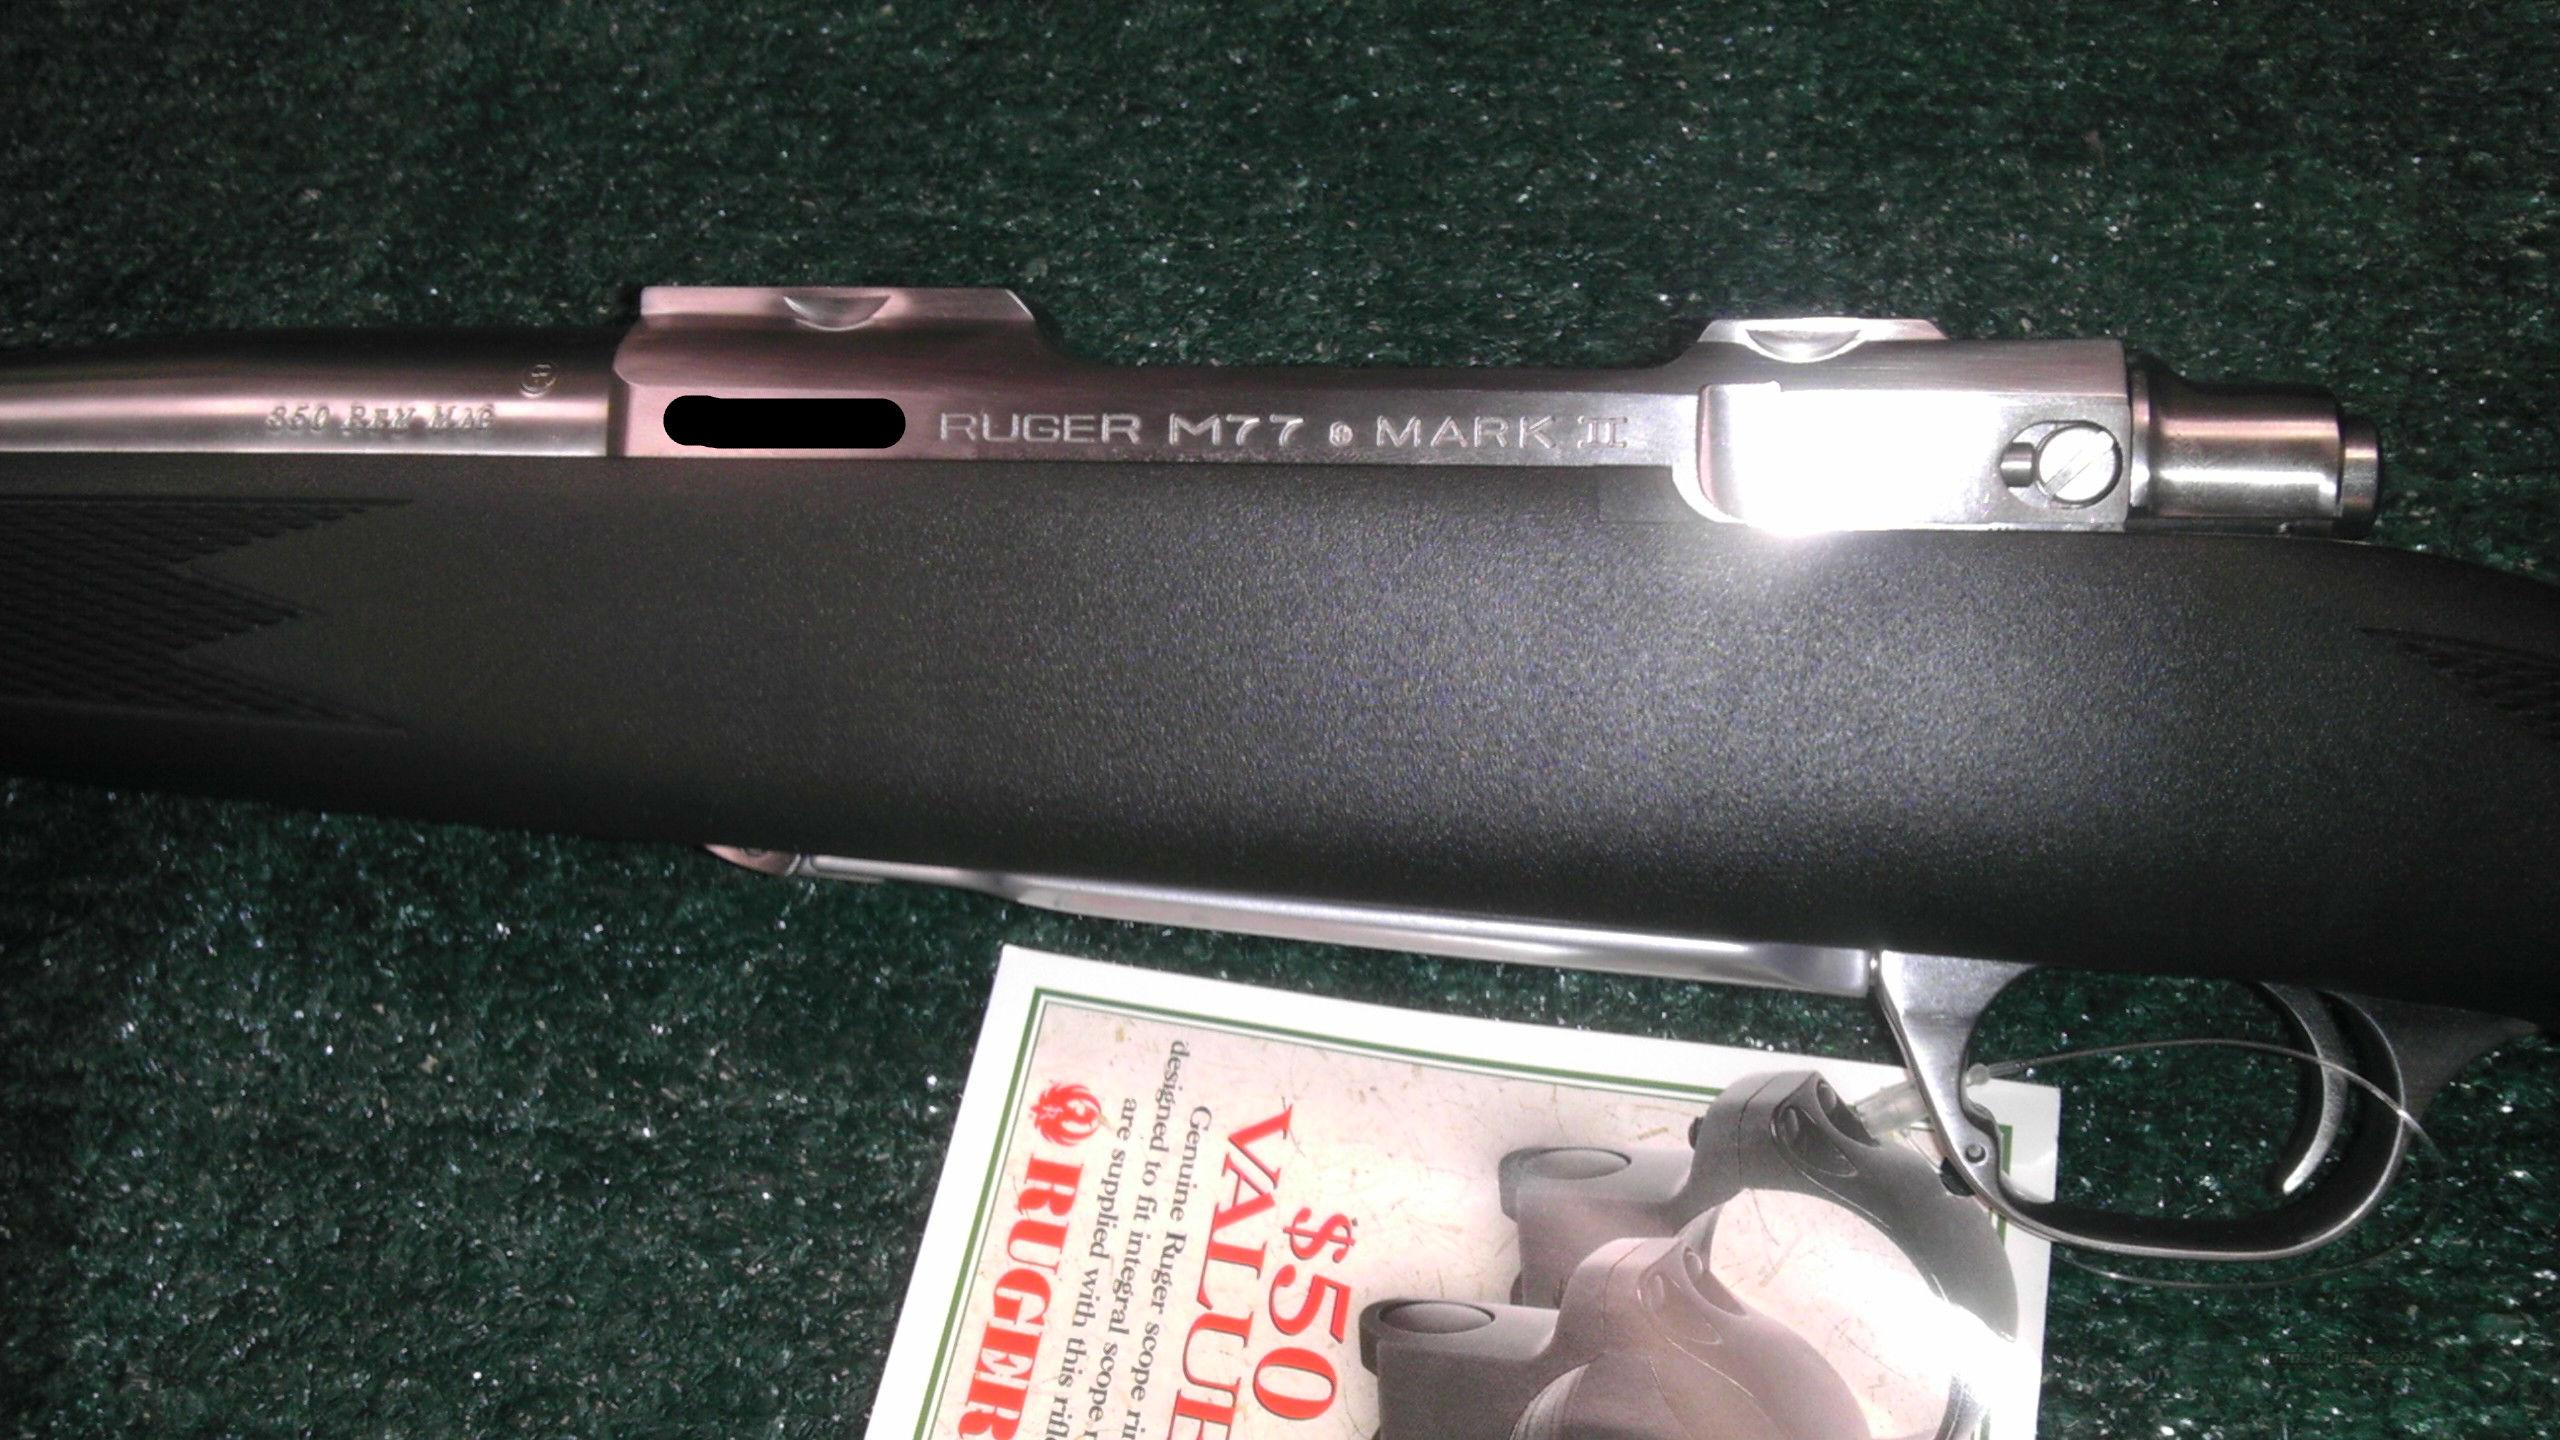 ruger m77 mark 2 owners manual